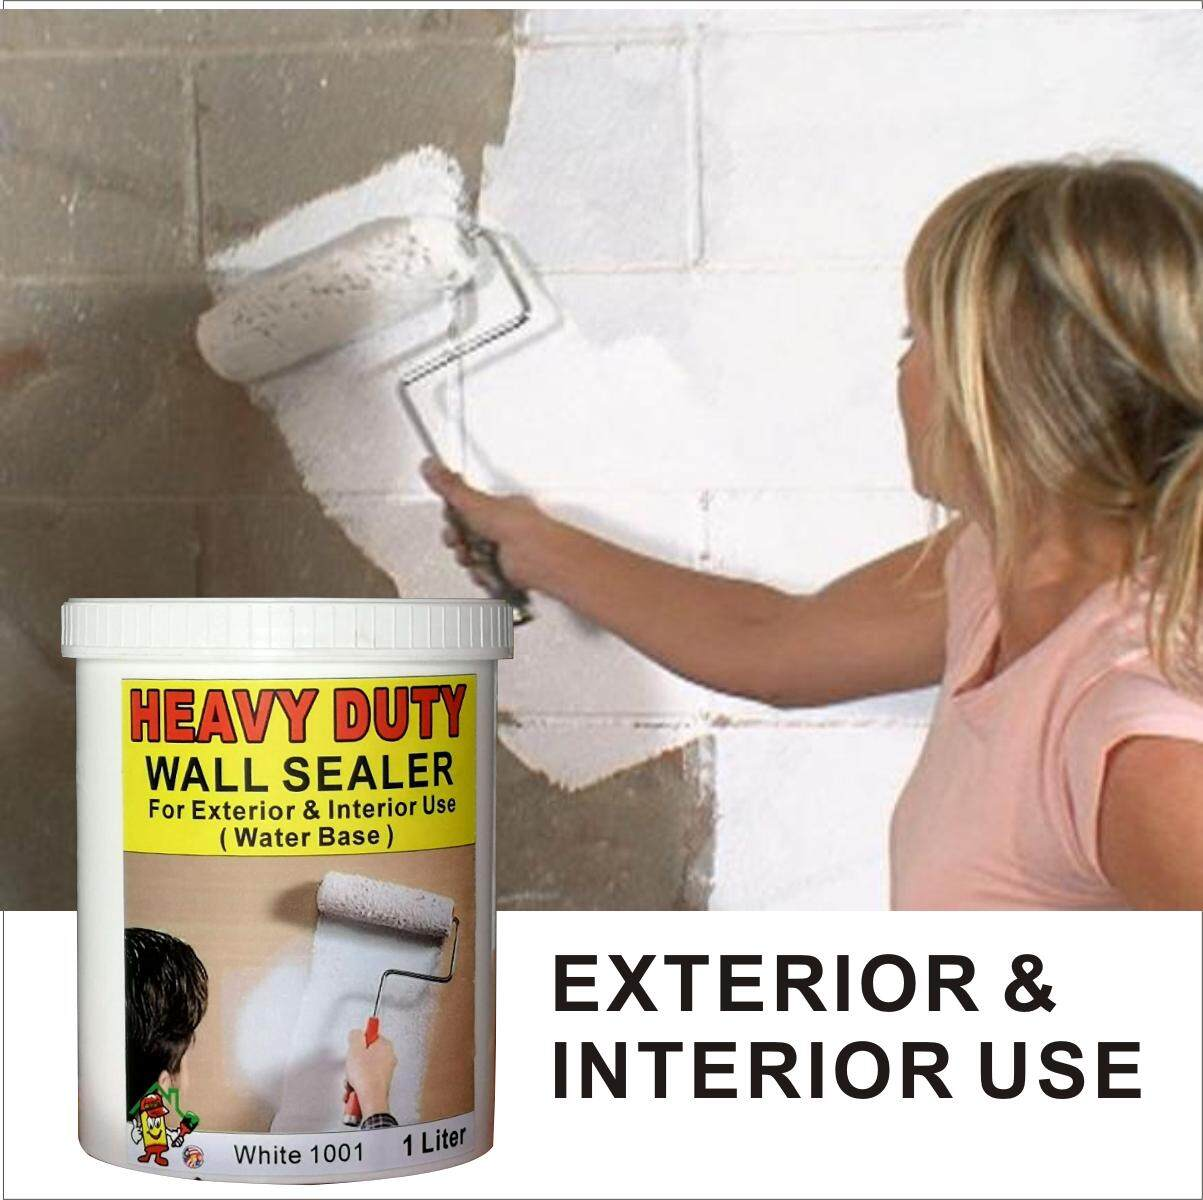 WALL SEALER HEAVY DUTY ( 1L ) FOR EXTERIOR & INTERIOR WALL PAINT WATER BASE WHITE COLOUR 1 LITER AND ALSO DEALER JOTUN NIPPON DULUX